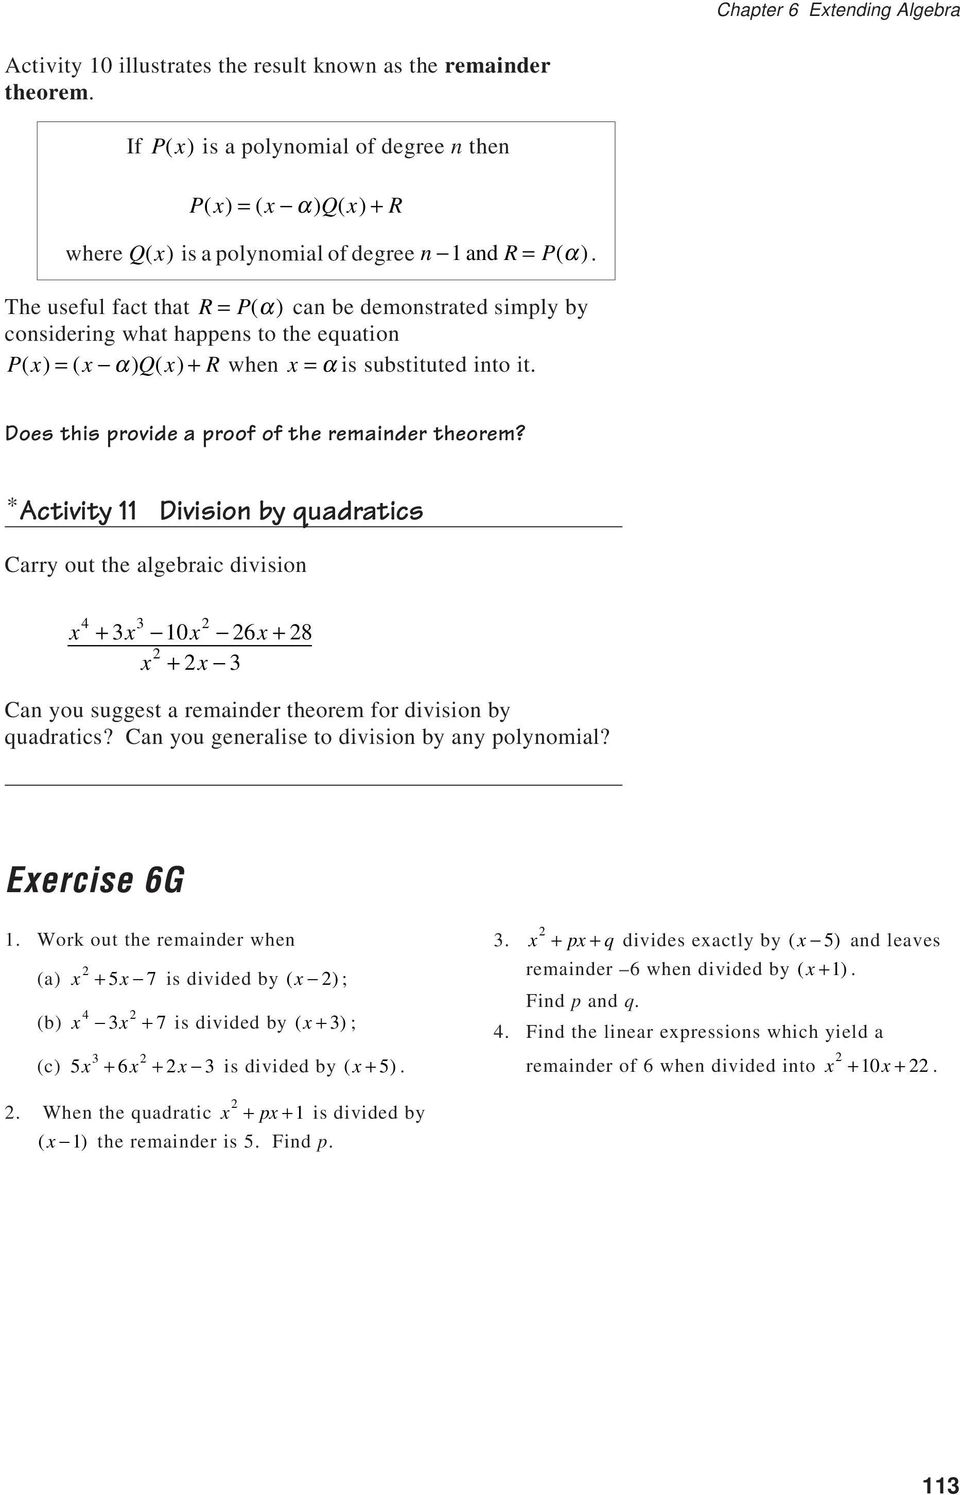 Solving Cubic Equations By Factoring Worksheet Jennarocca – The Remainder Theorem Worksheet